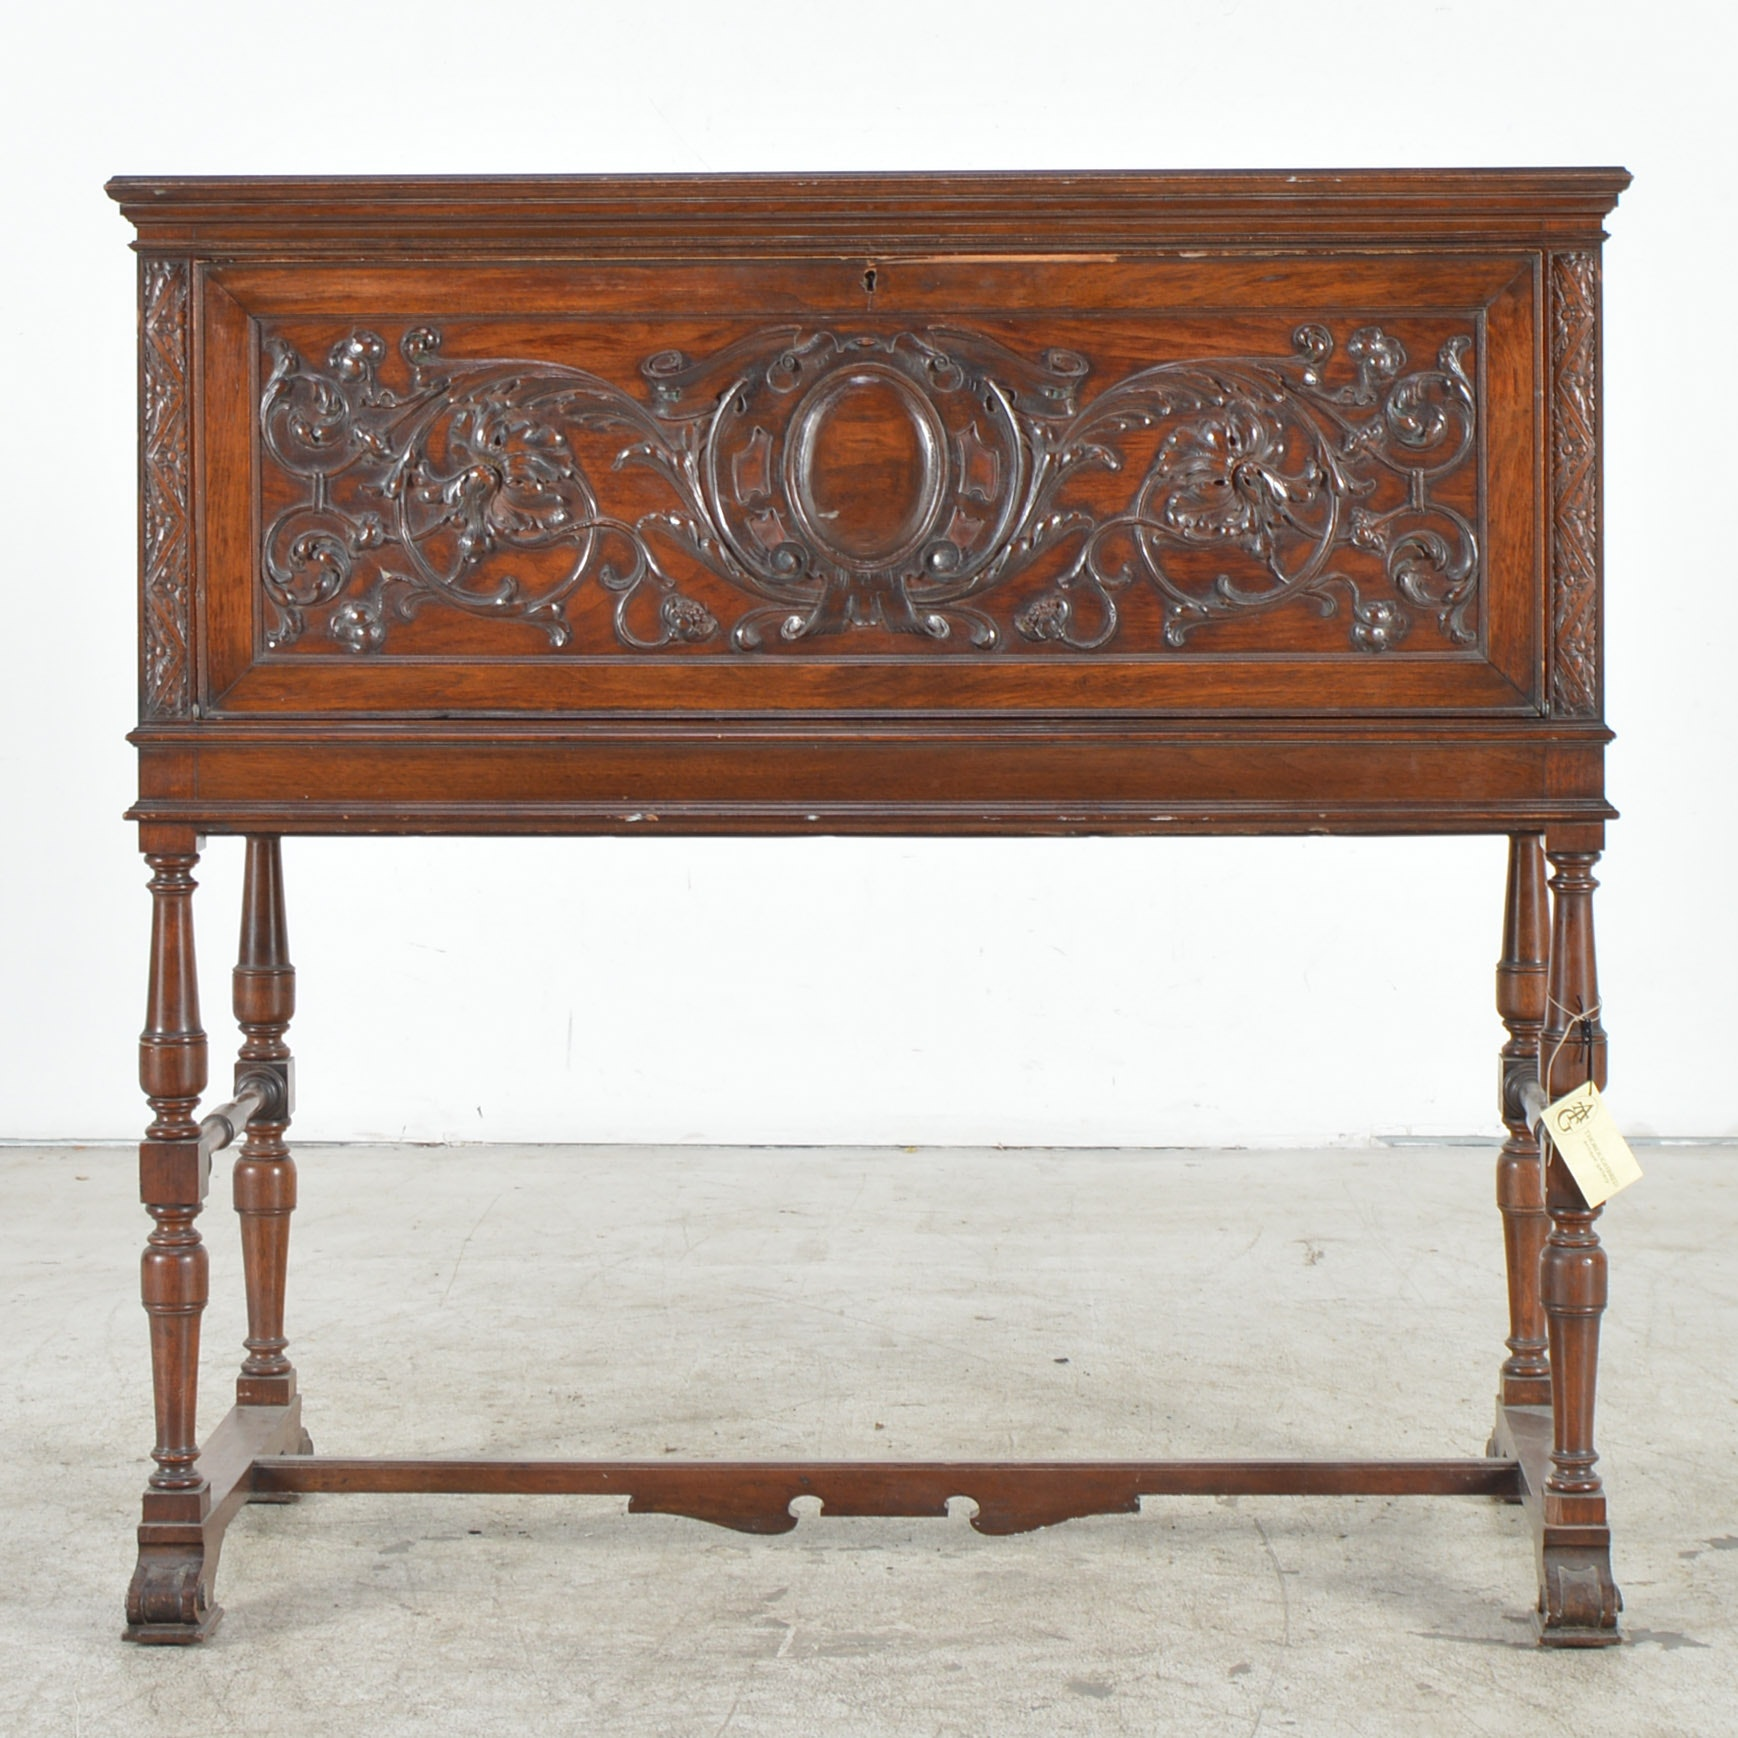 Victorian Gothic Revival Carved Walnut Writing Desk